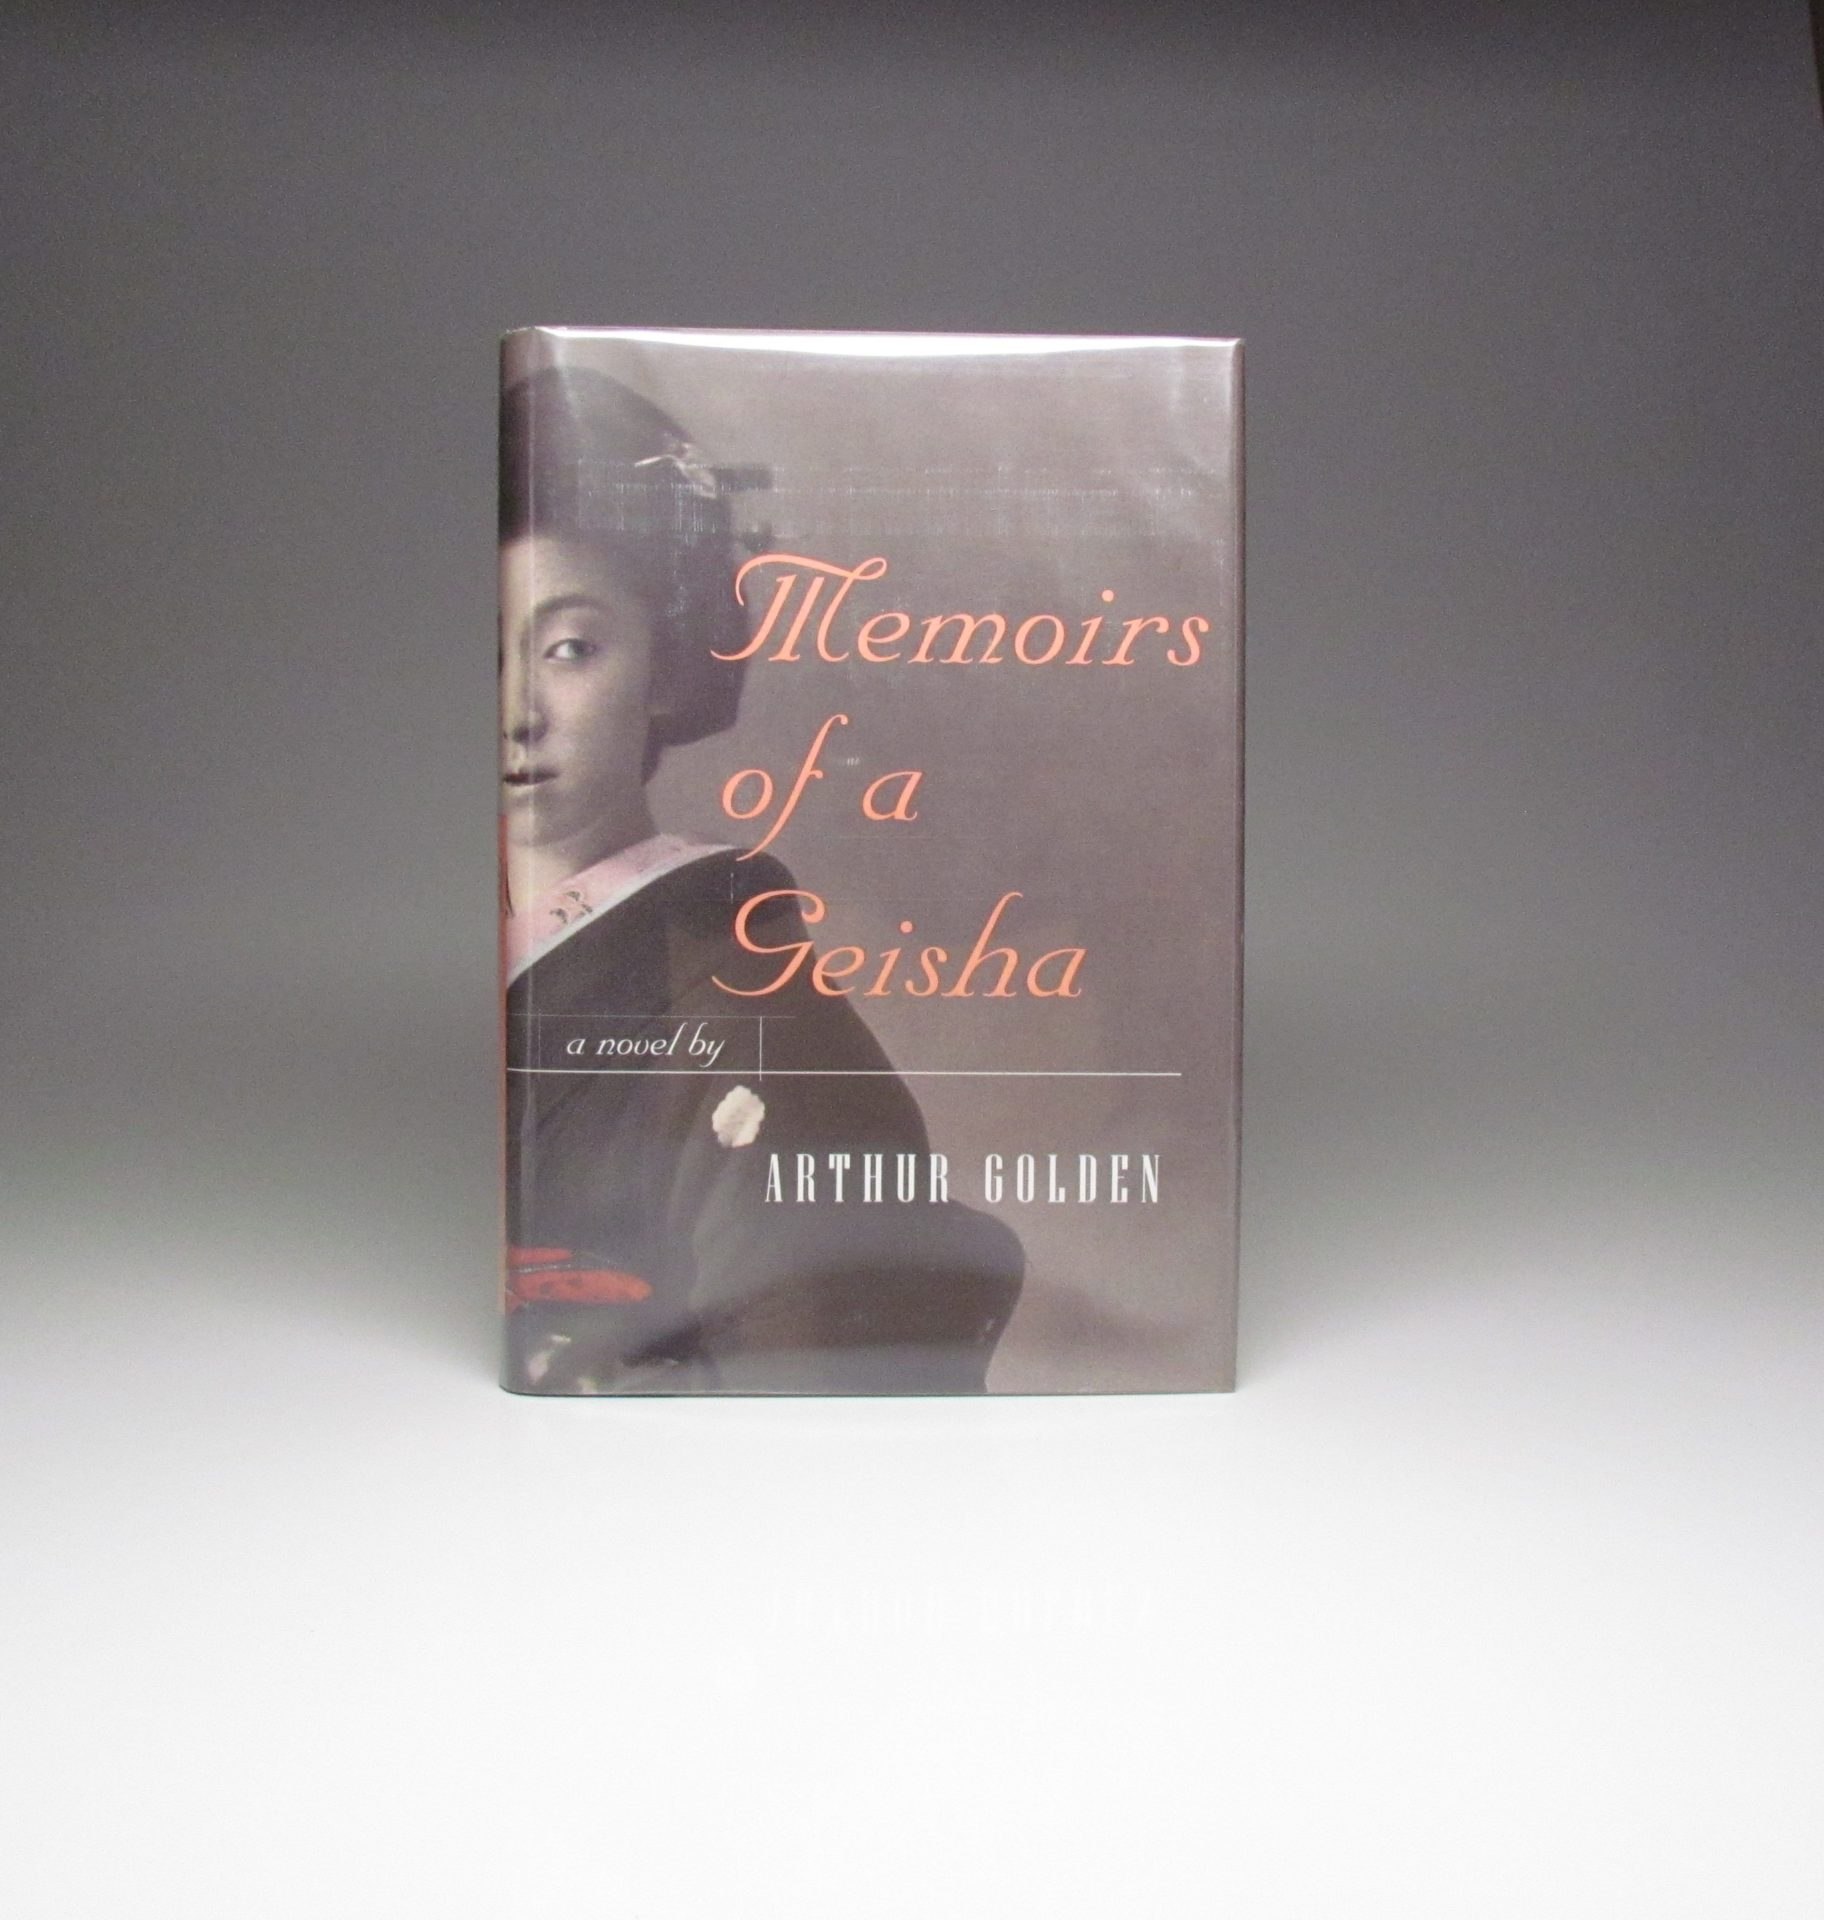 Thanks memoirs of geisha by arthur golden